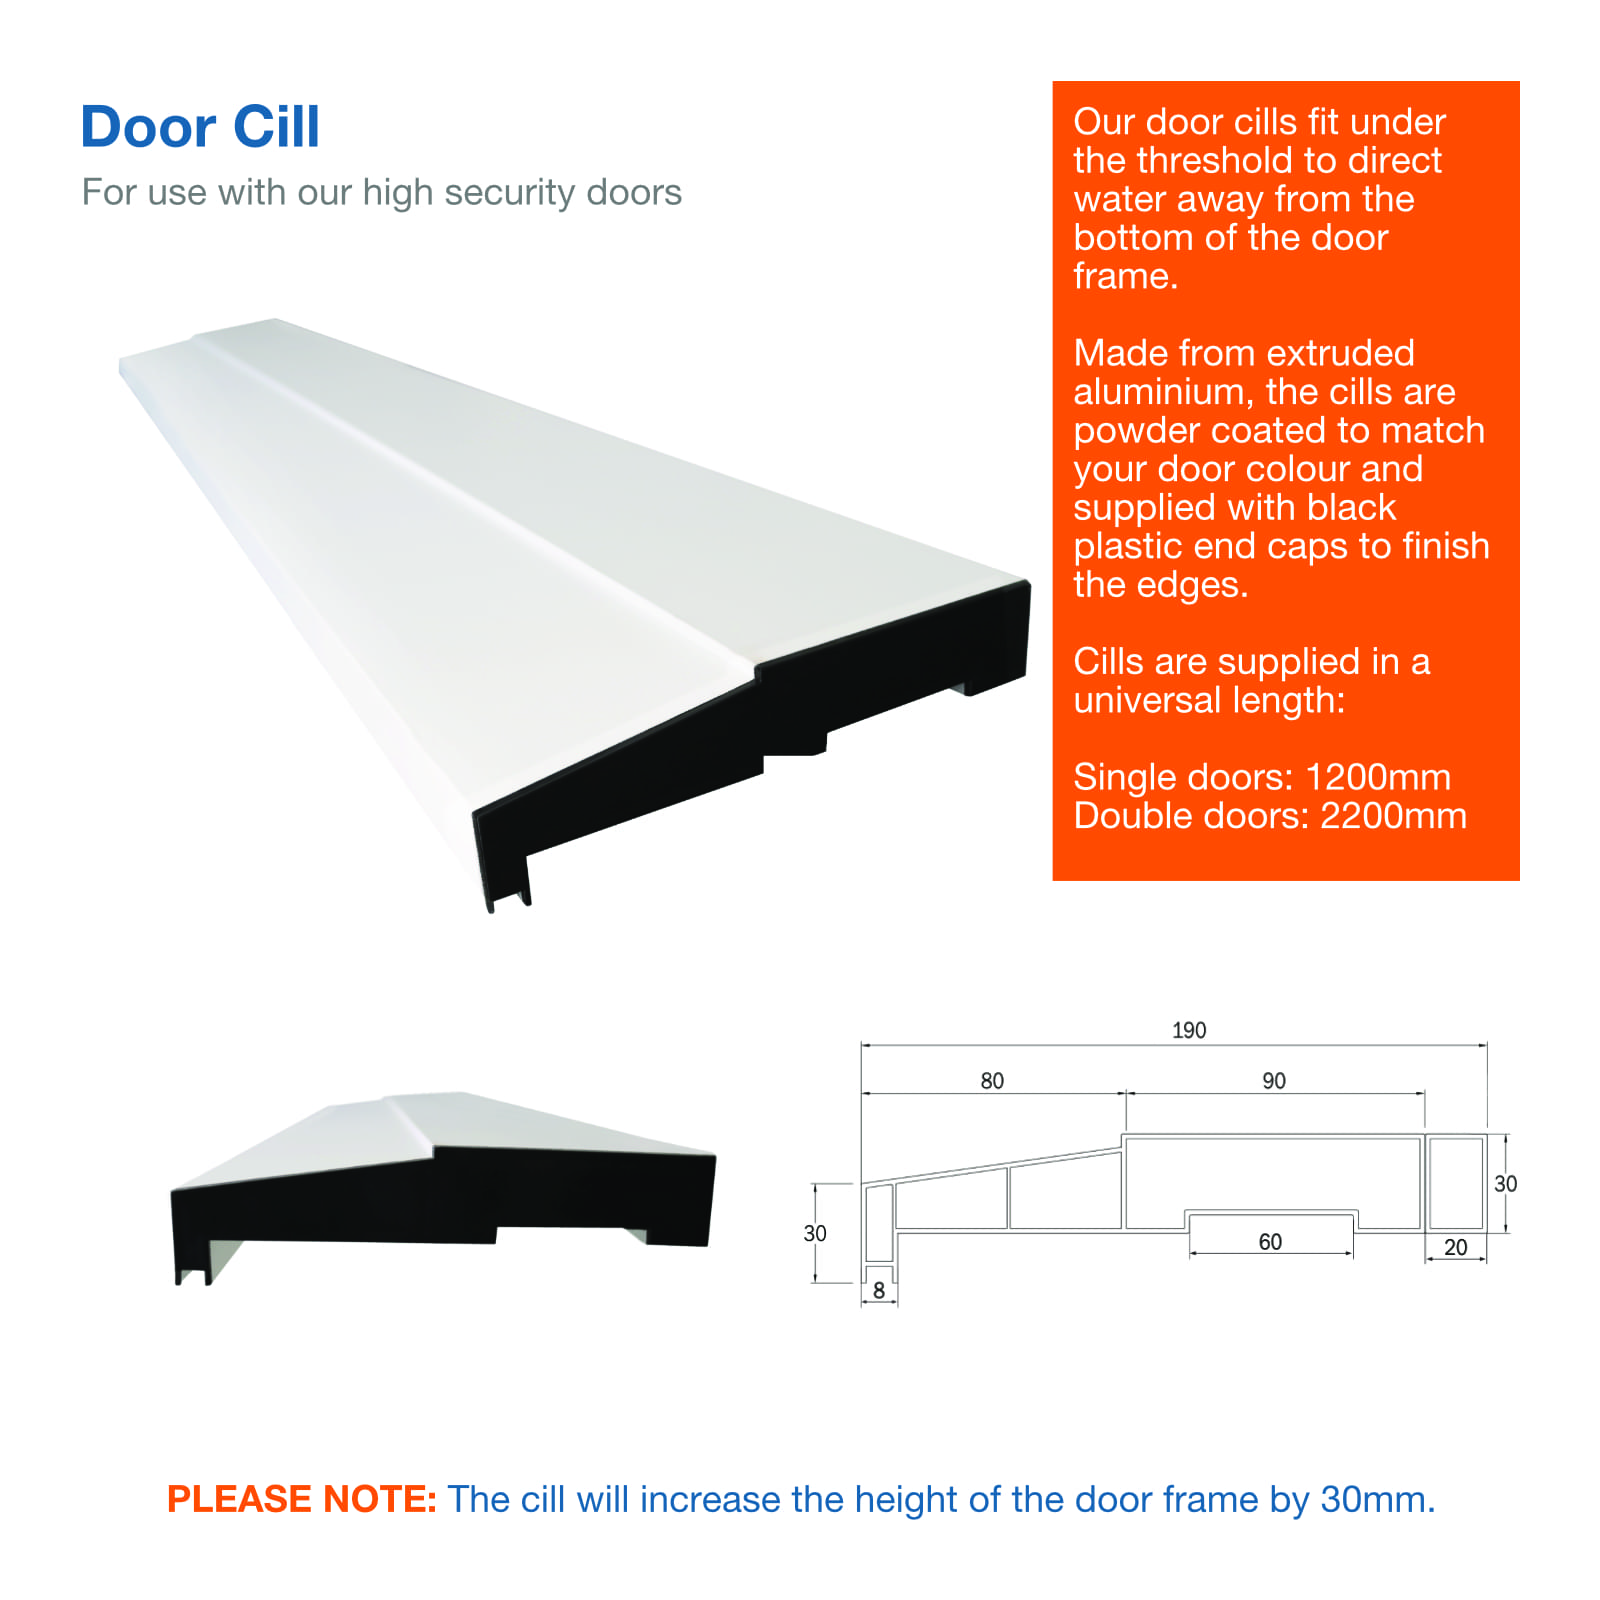 Image showing elevations and dimensions for a high security steel door cill